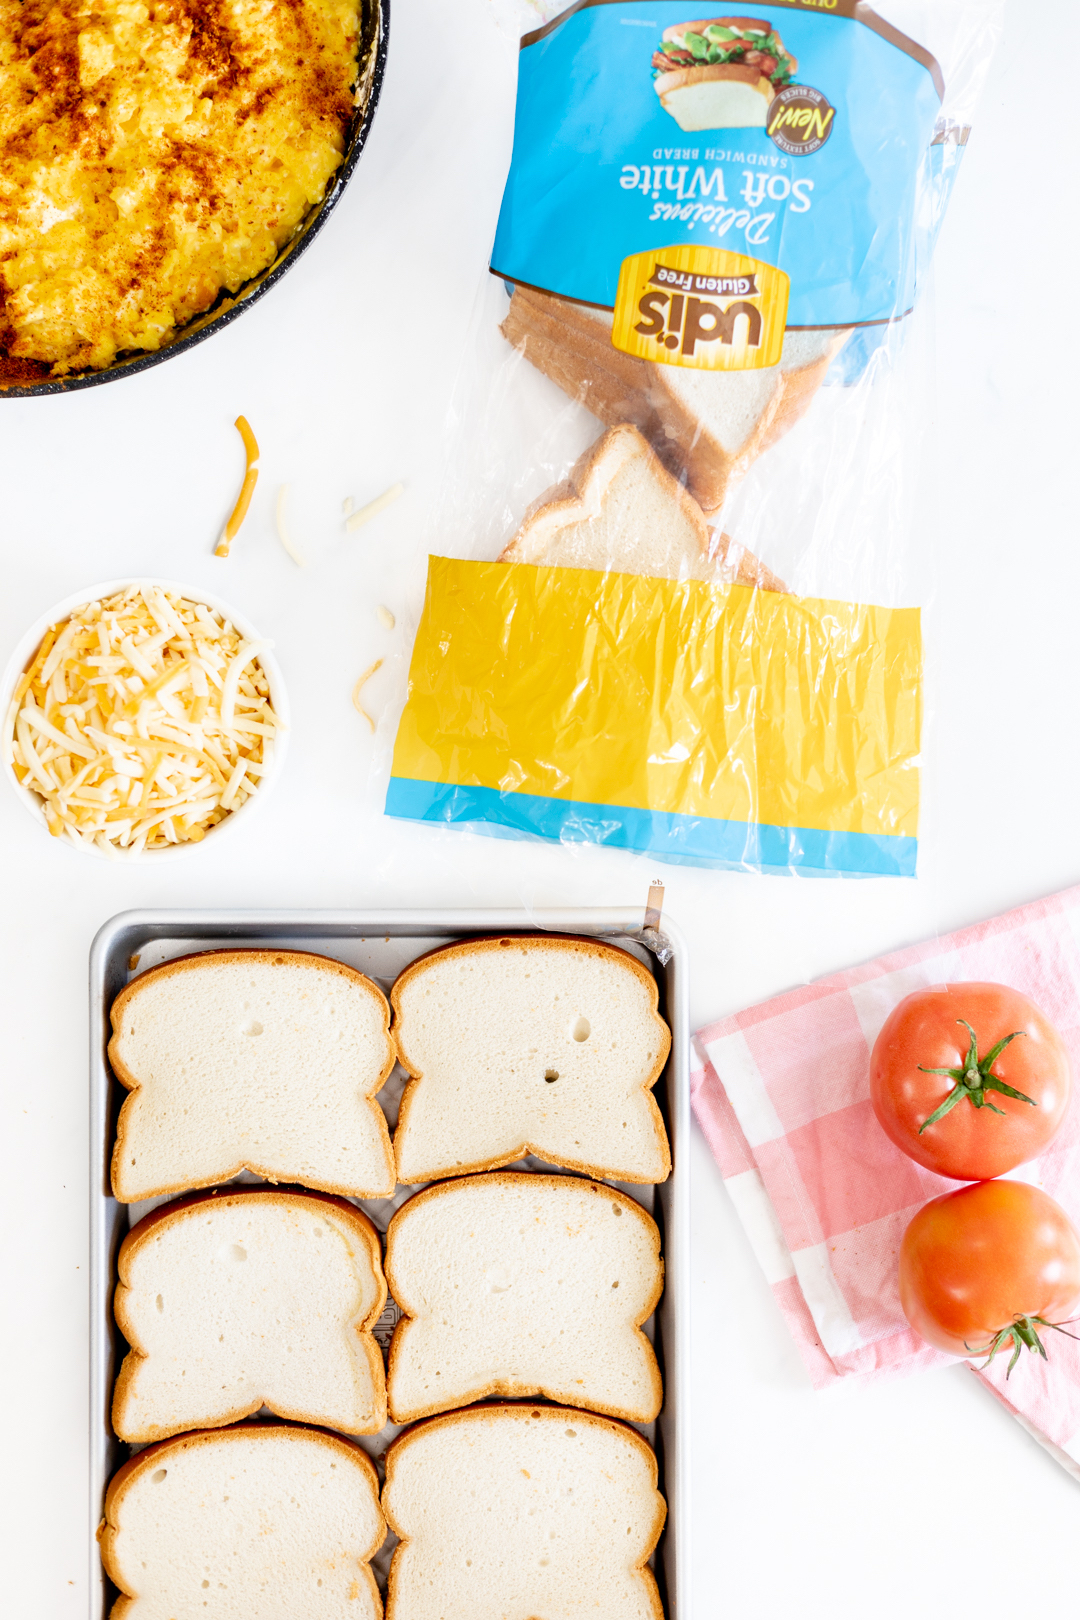 sandwich ingredients with gluten free bread